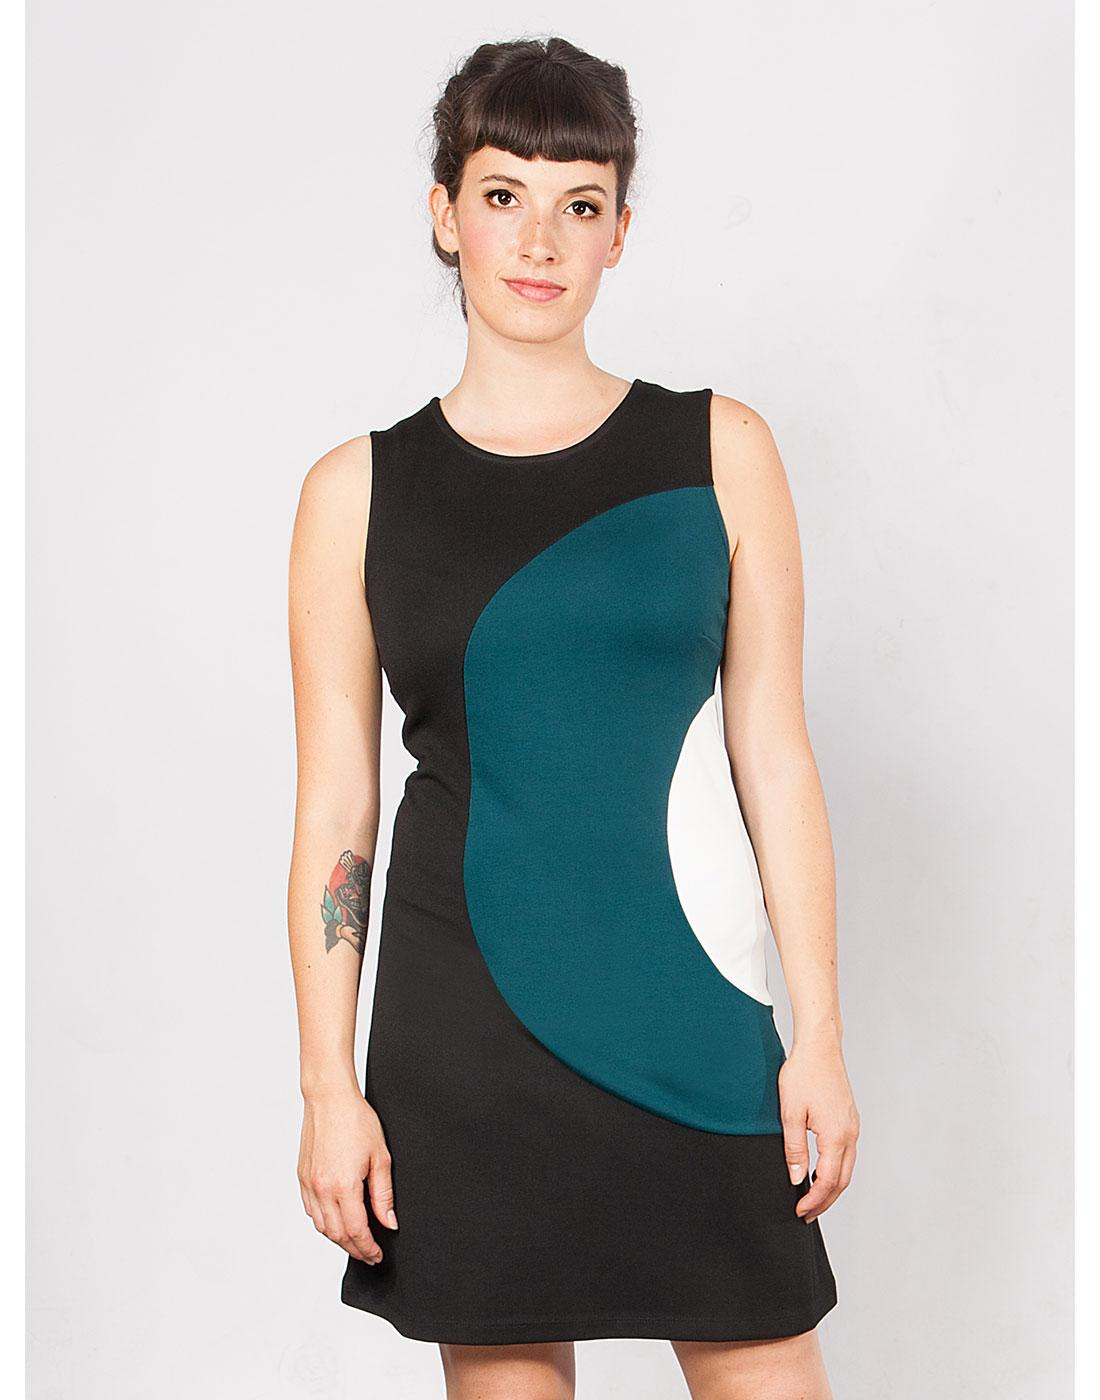 Peggy MADEMOISELLE YEYE Retro Mod Target Dress